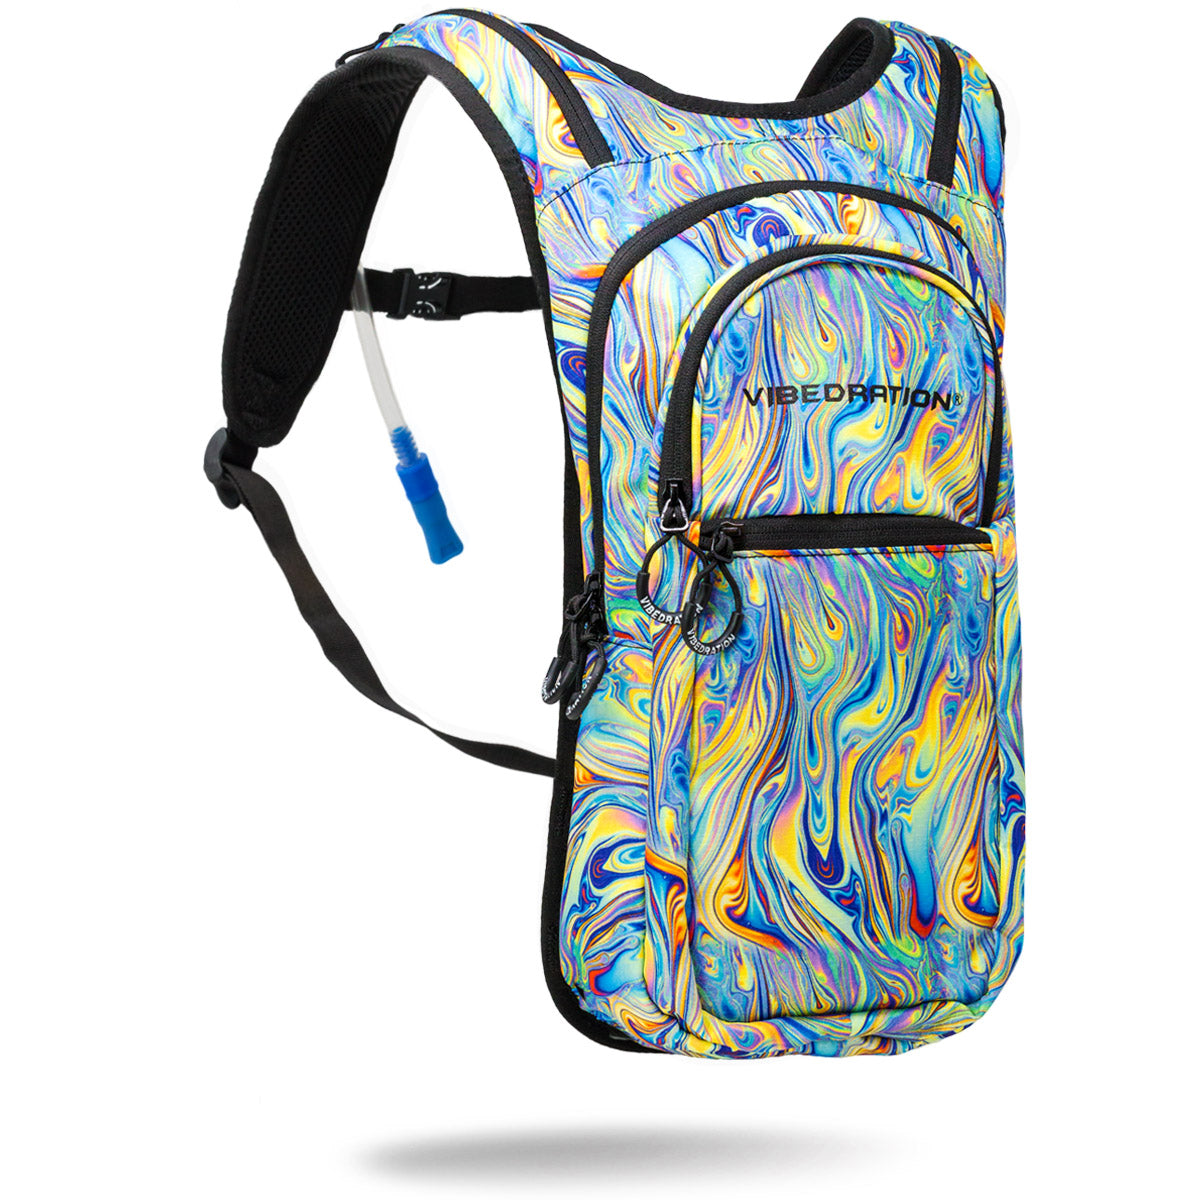 Psychedelic Marble Printed Hydration Pack with 2 Liter water capacity